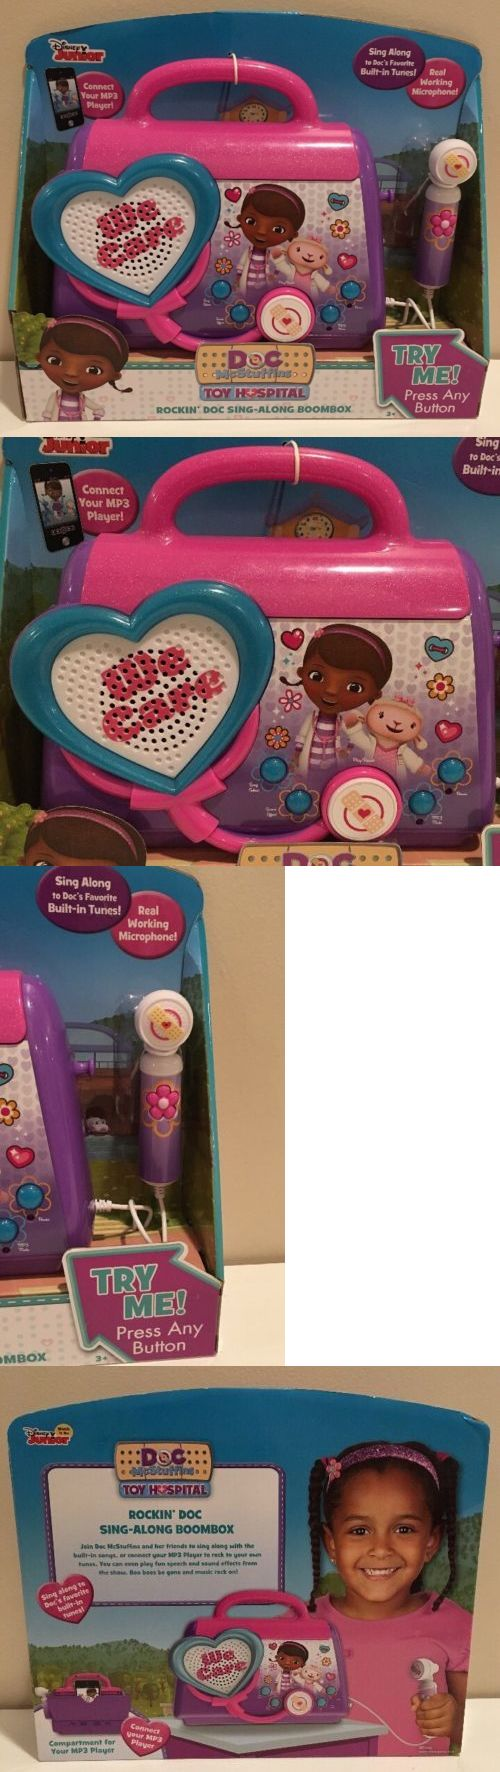 Radios Musical Toys 145943: Disney Junior Doc Mcstuffins Rockin Doc Sing Along Boom Box With Microphone New -> BUY IT NOW ONLY: $35.99 on eBay!